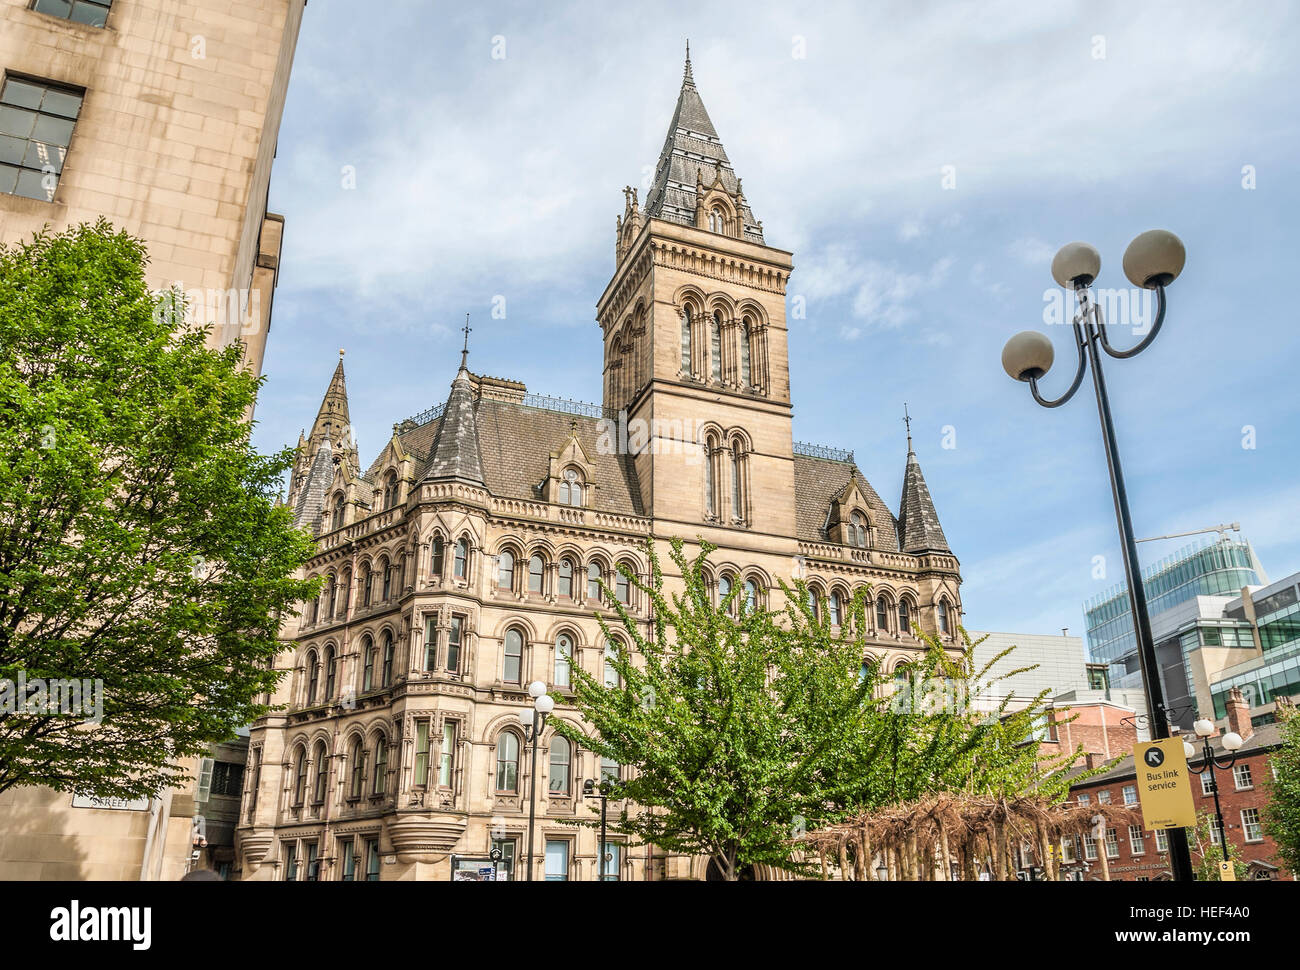 Manchester Town Hall is a building in Manchester, England that houses Manchester City Council. - Stock Image